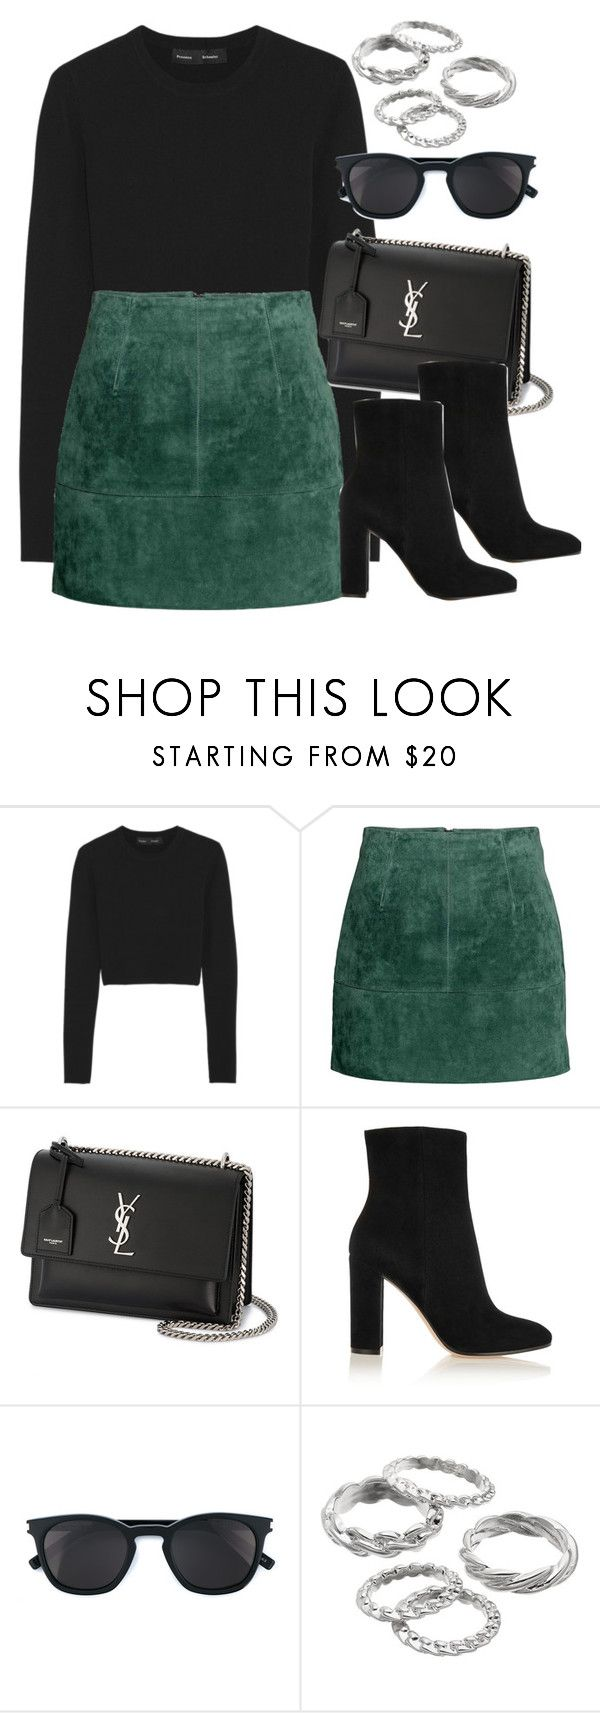 """""""#13927"""" by vany-alvarado ❤ liked on Polyvore featuring Proenza Schouler, Yves Saint Laurent, Gianvito Rossi and Apt. 9"""